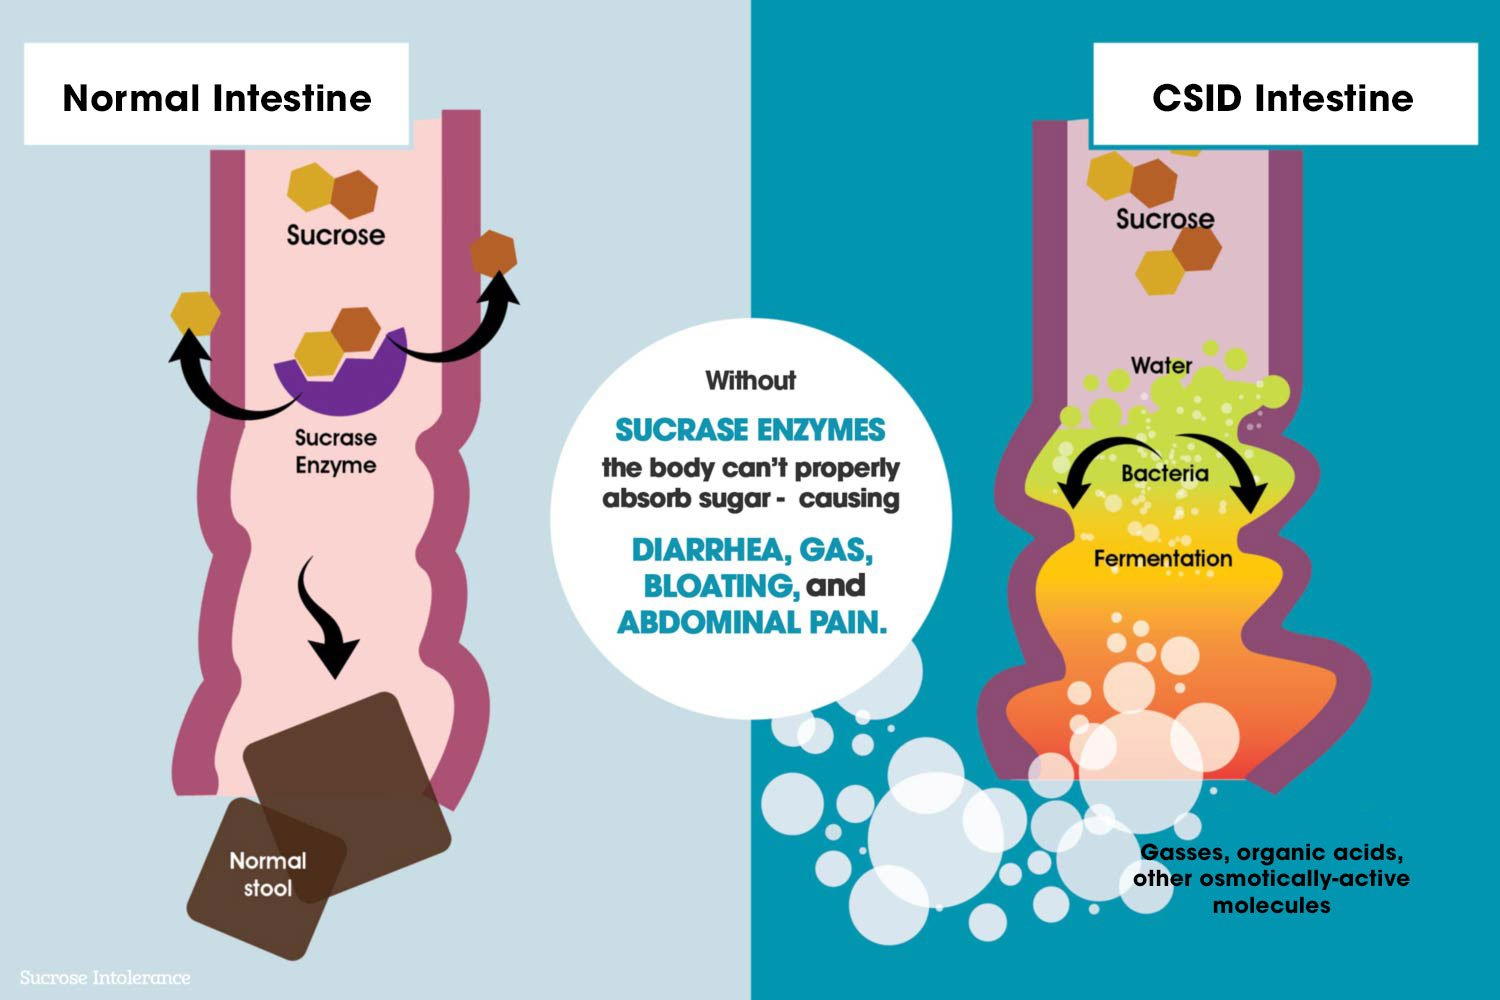 CSID Intestine vs. Normal Intestine